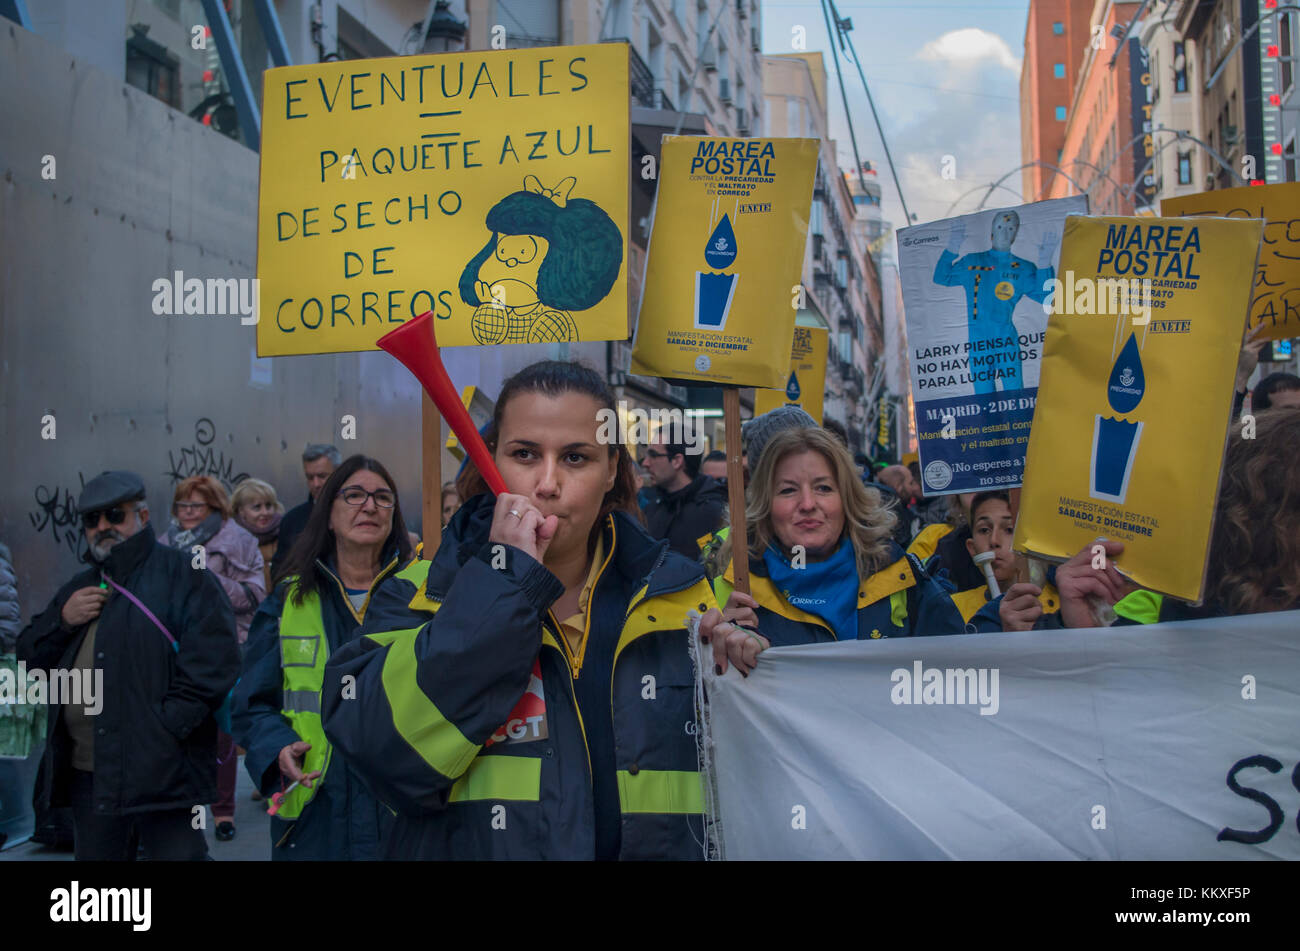 Madrid, Spain. 02nd Dec, 2017. Hundreds of post-office clerks protested in Madrid against low wages, bad working - Stock Image